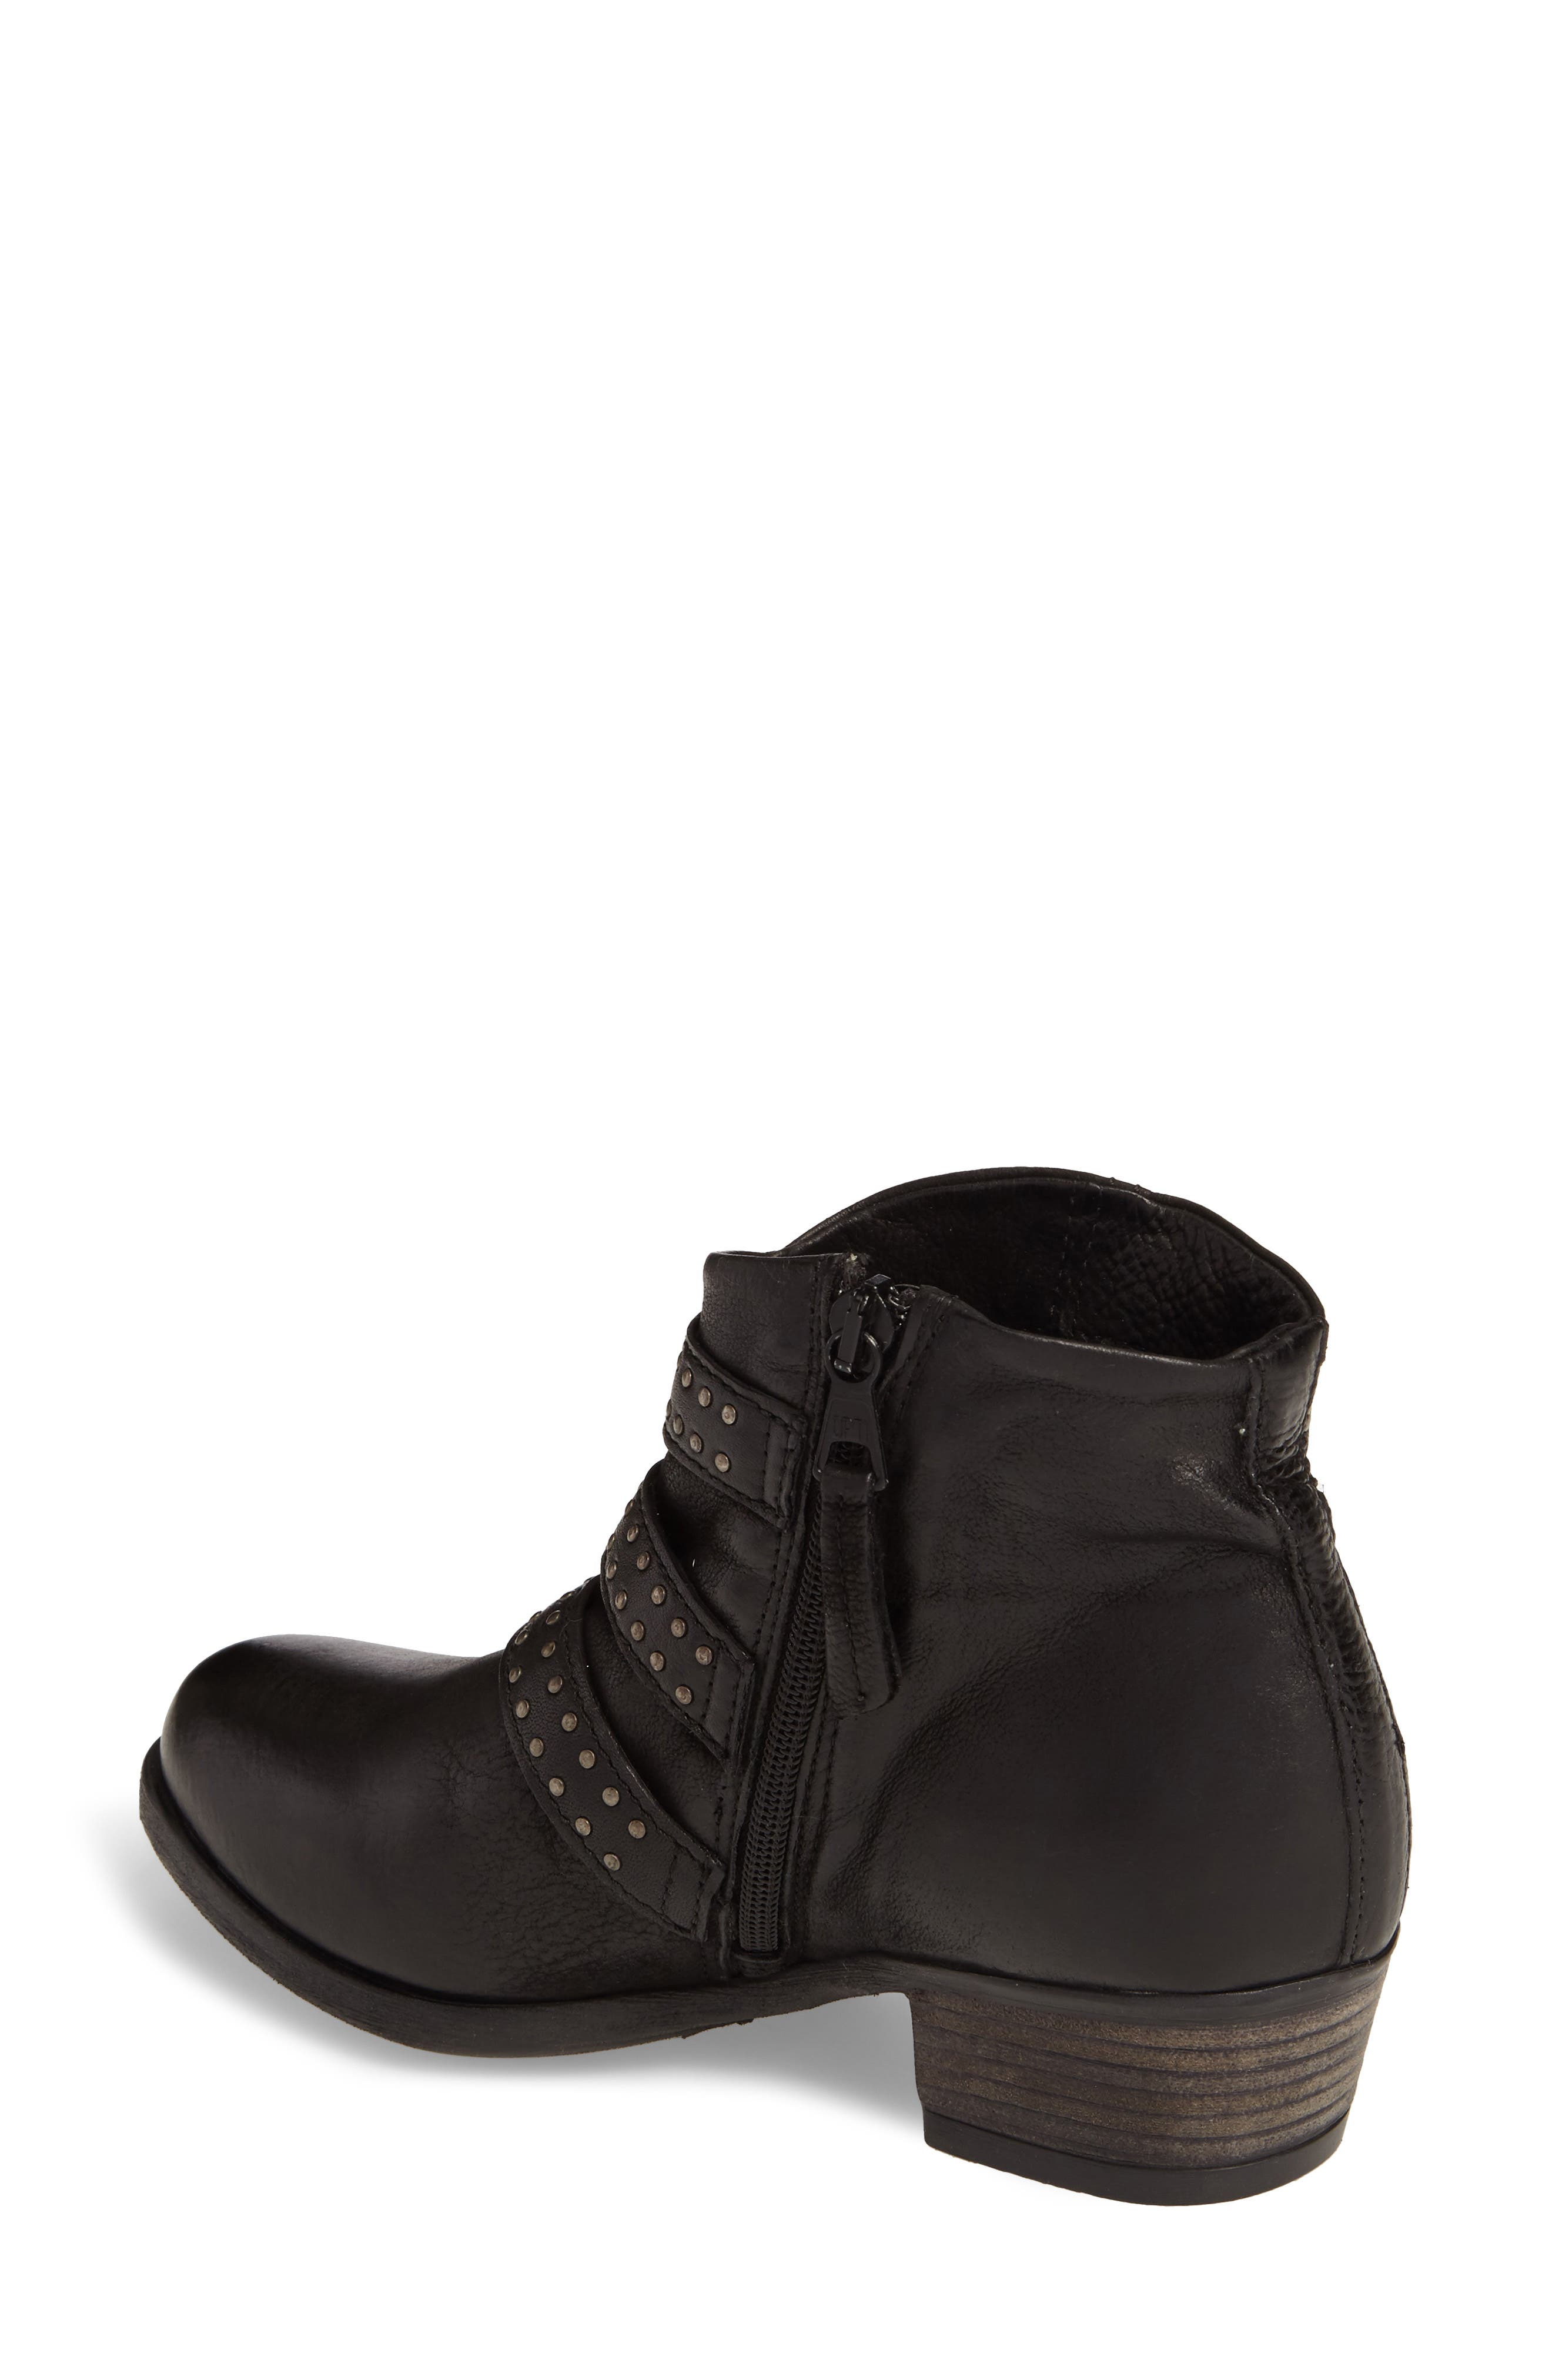 Barclay Studded Moto Bootie,                             Alternate thumbnail 2, color,                             001